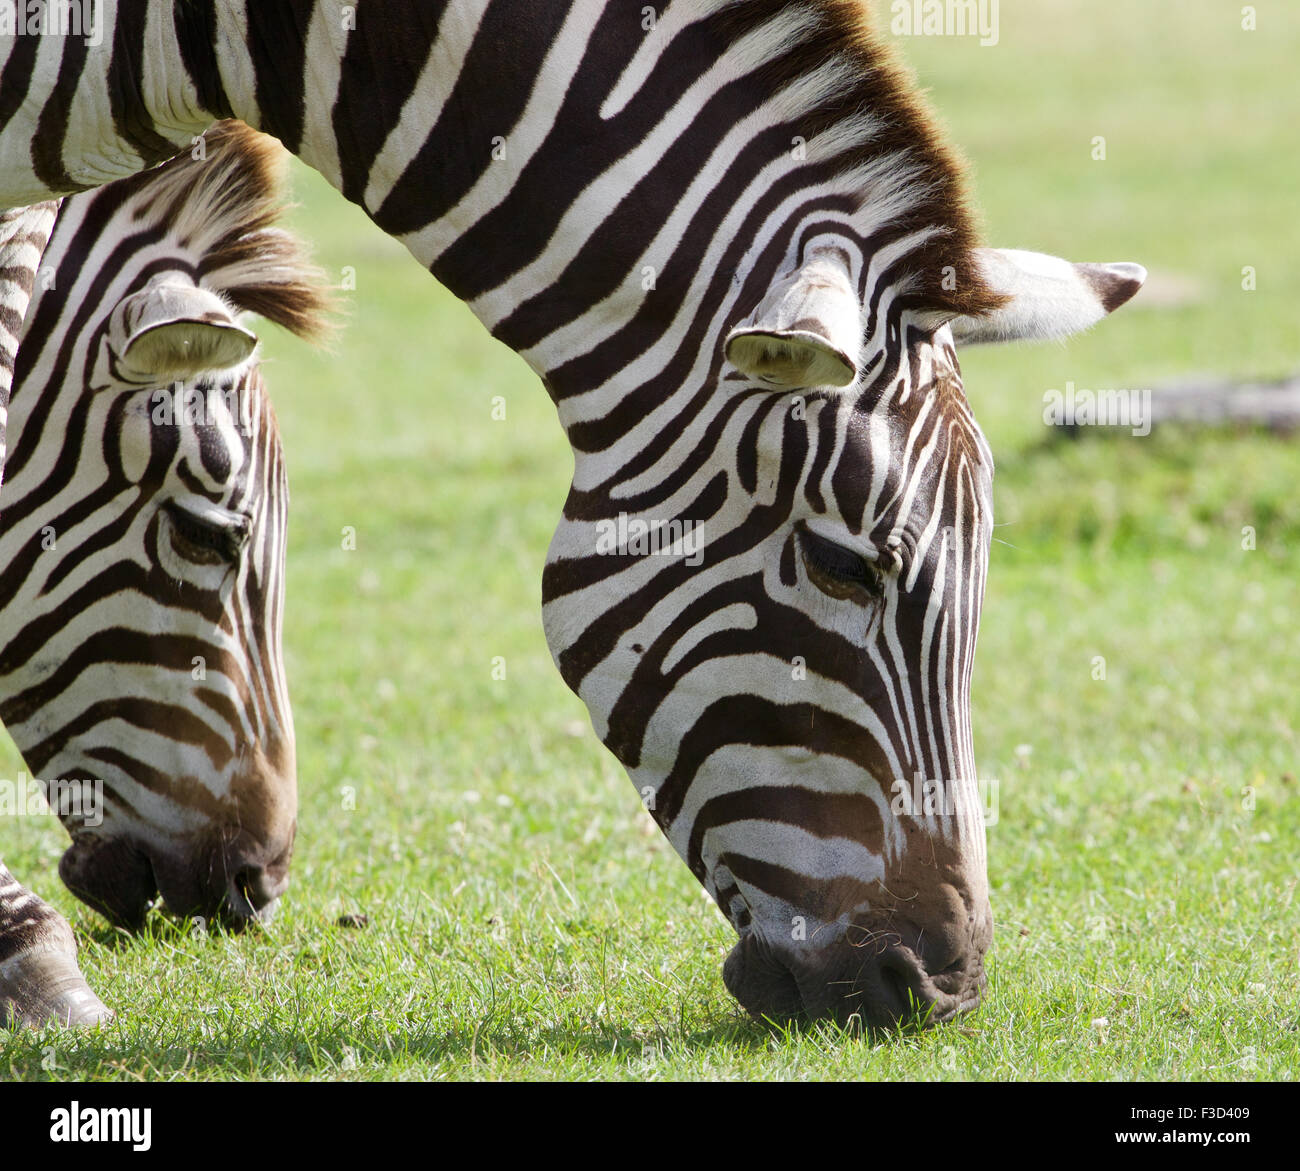 Zebras are eating the green grass together - Stock Image